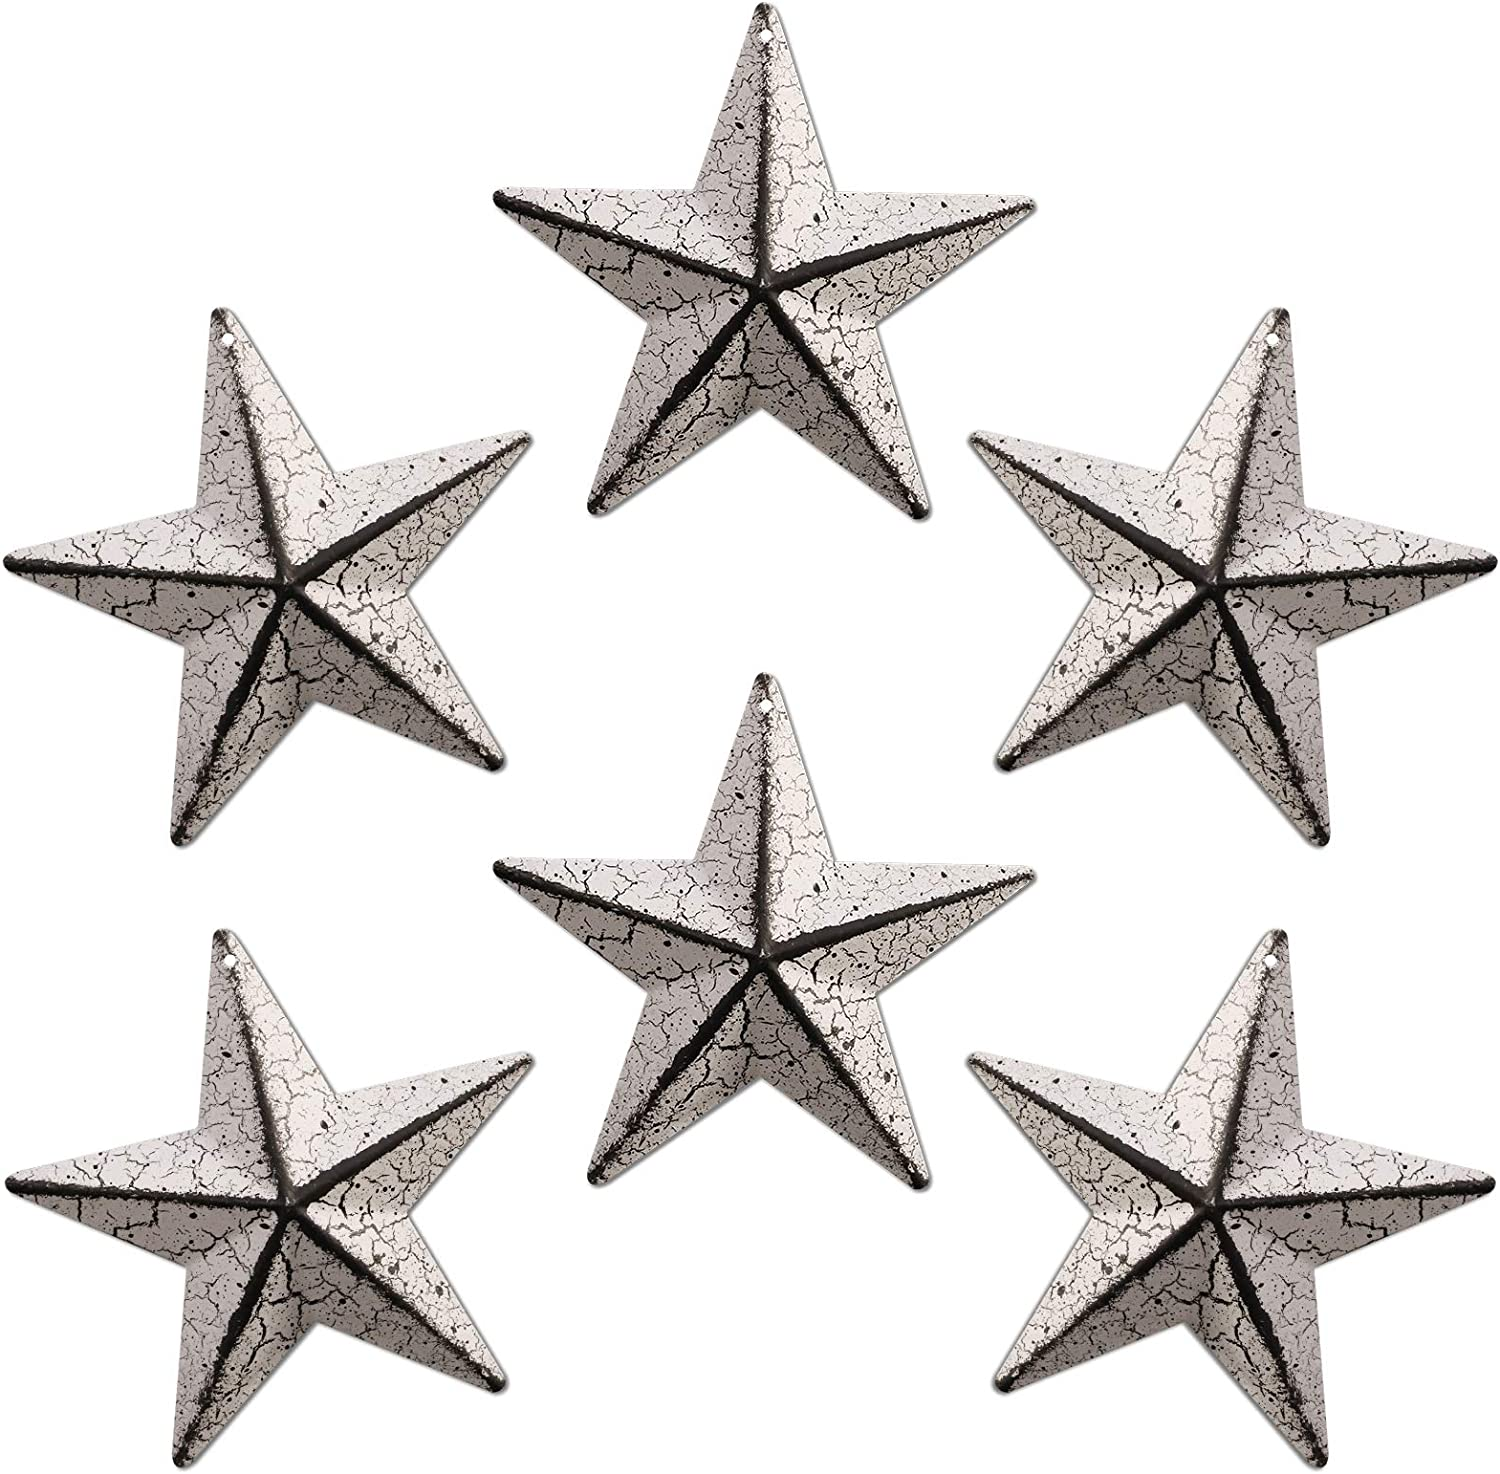 WKHOMEDECO Metal Barn Star/Metal Star for Outside Texas Stars Art Rustic Vintage Western Country Home Farmhouse Wall/Door Decor, 4-Inch, Set of 6. (Crackle white)…